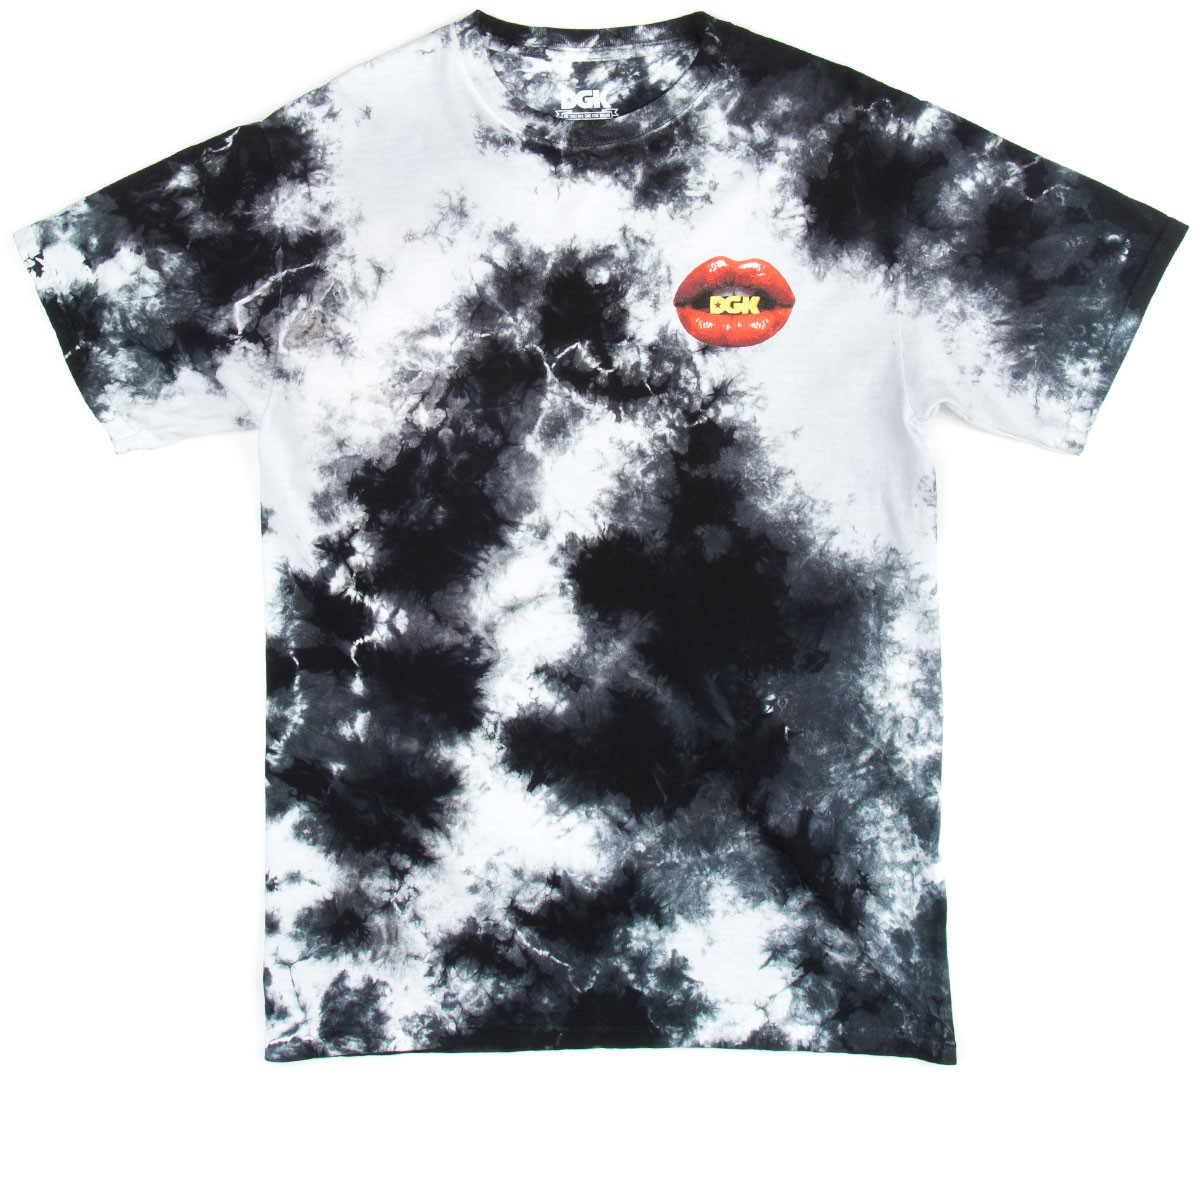 Dgk Lips T Shirt Tie Dye Black